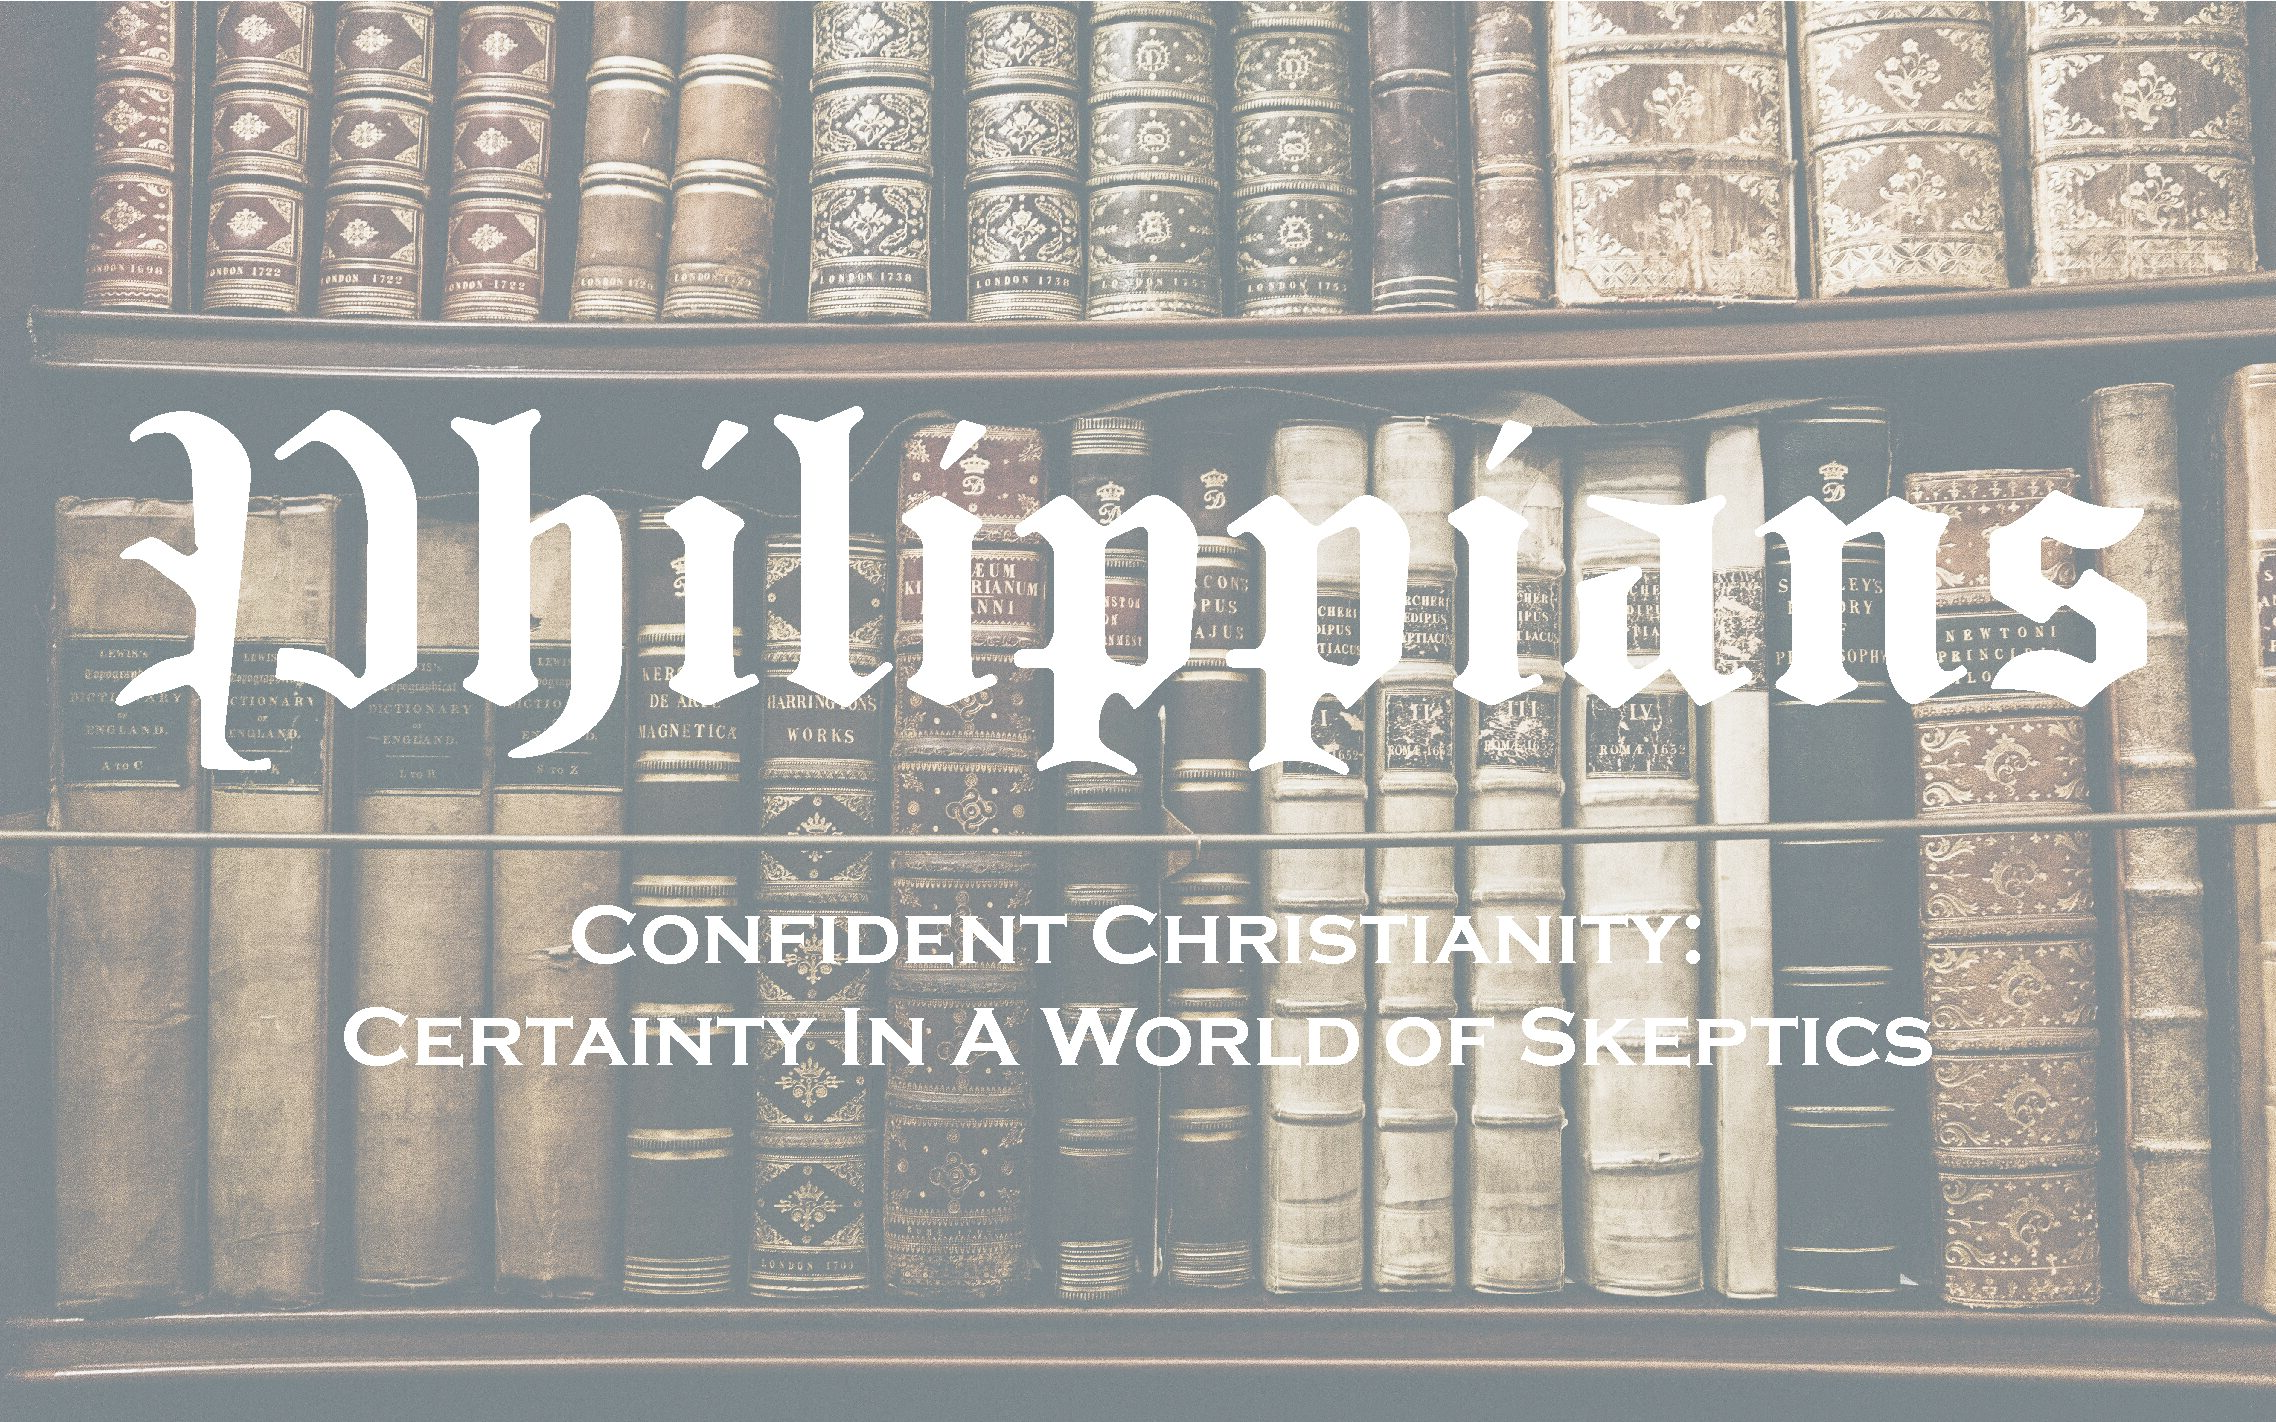 Deceived and Delighted: Self-Confidence in Light of Scripture